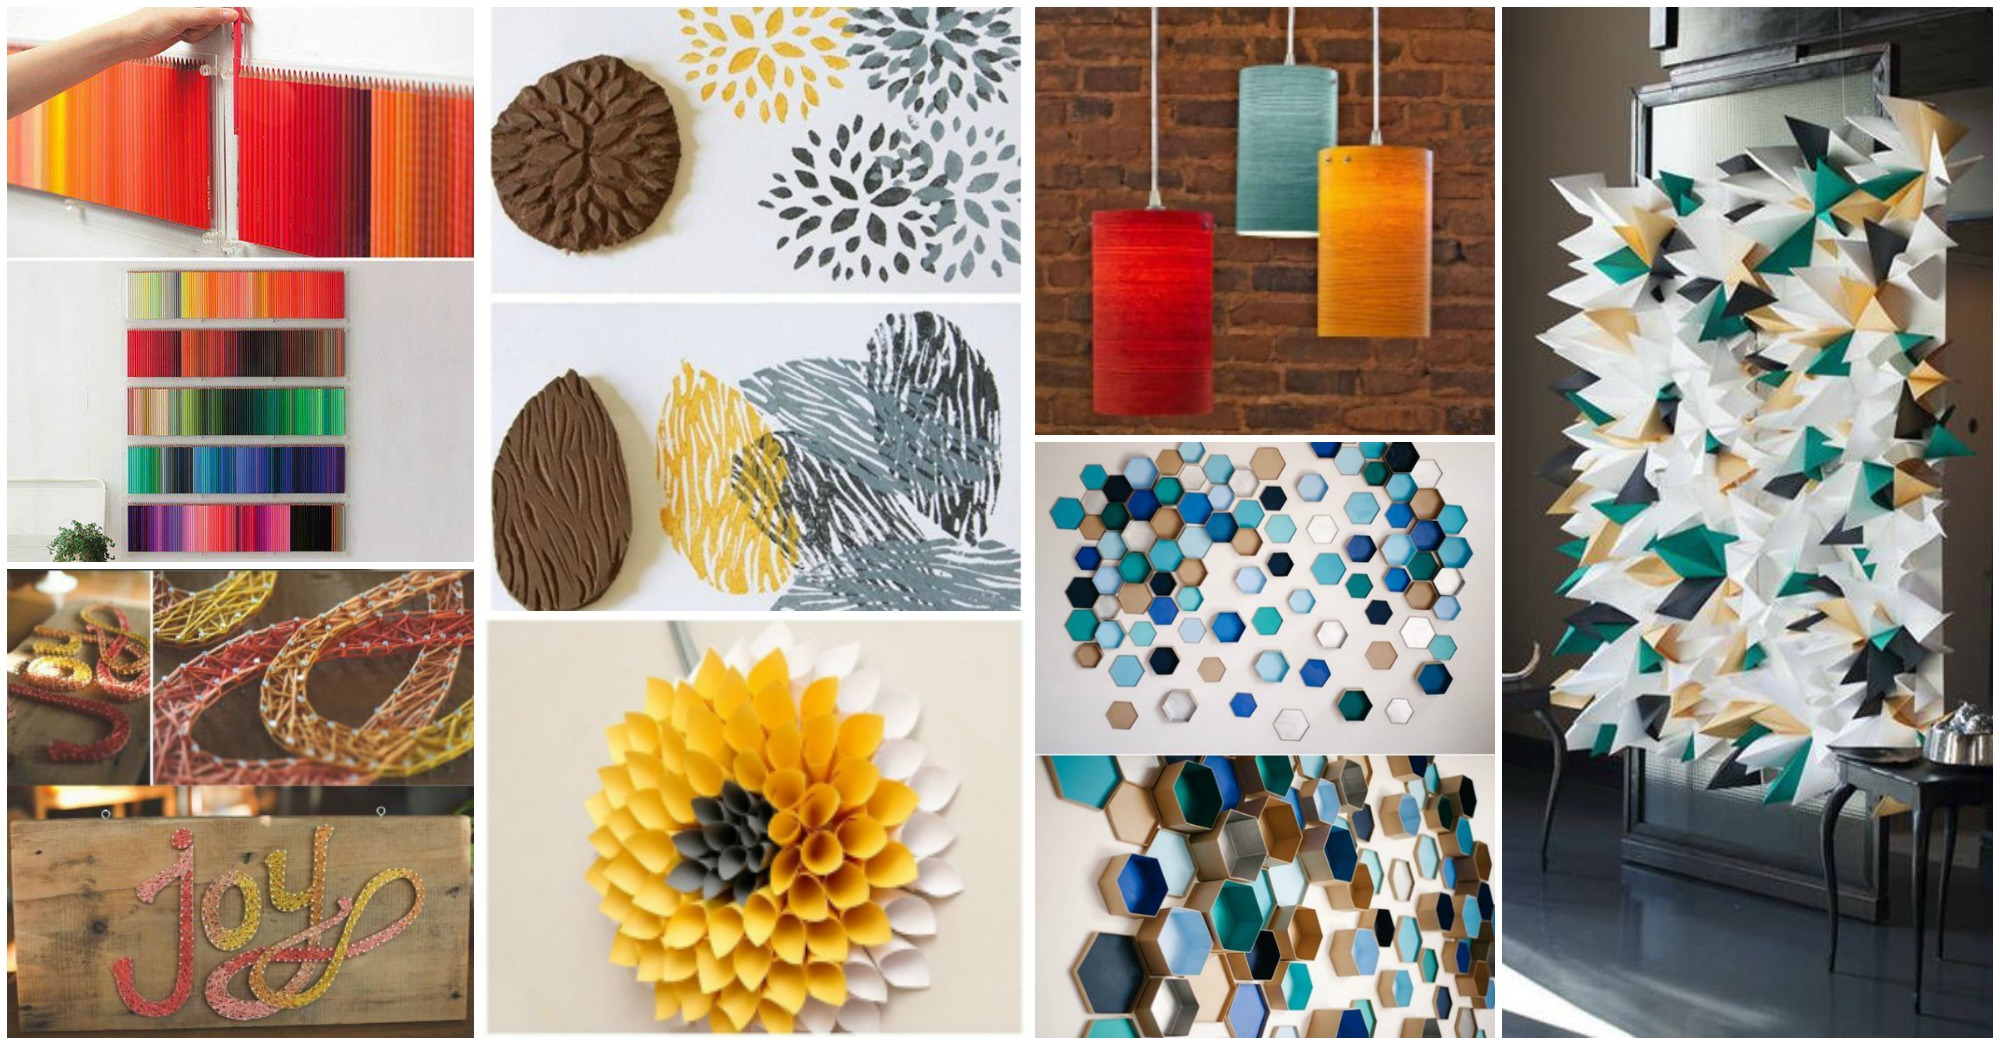 13 fantastic diy wall decor crafts for Pinterest crafts for home decor